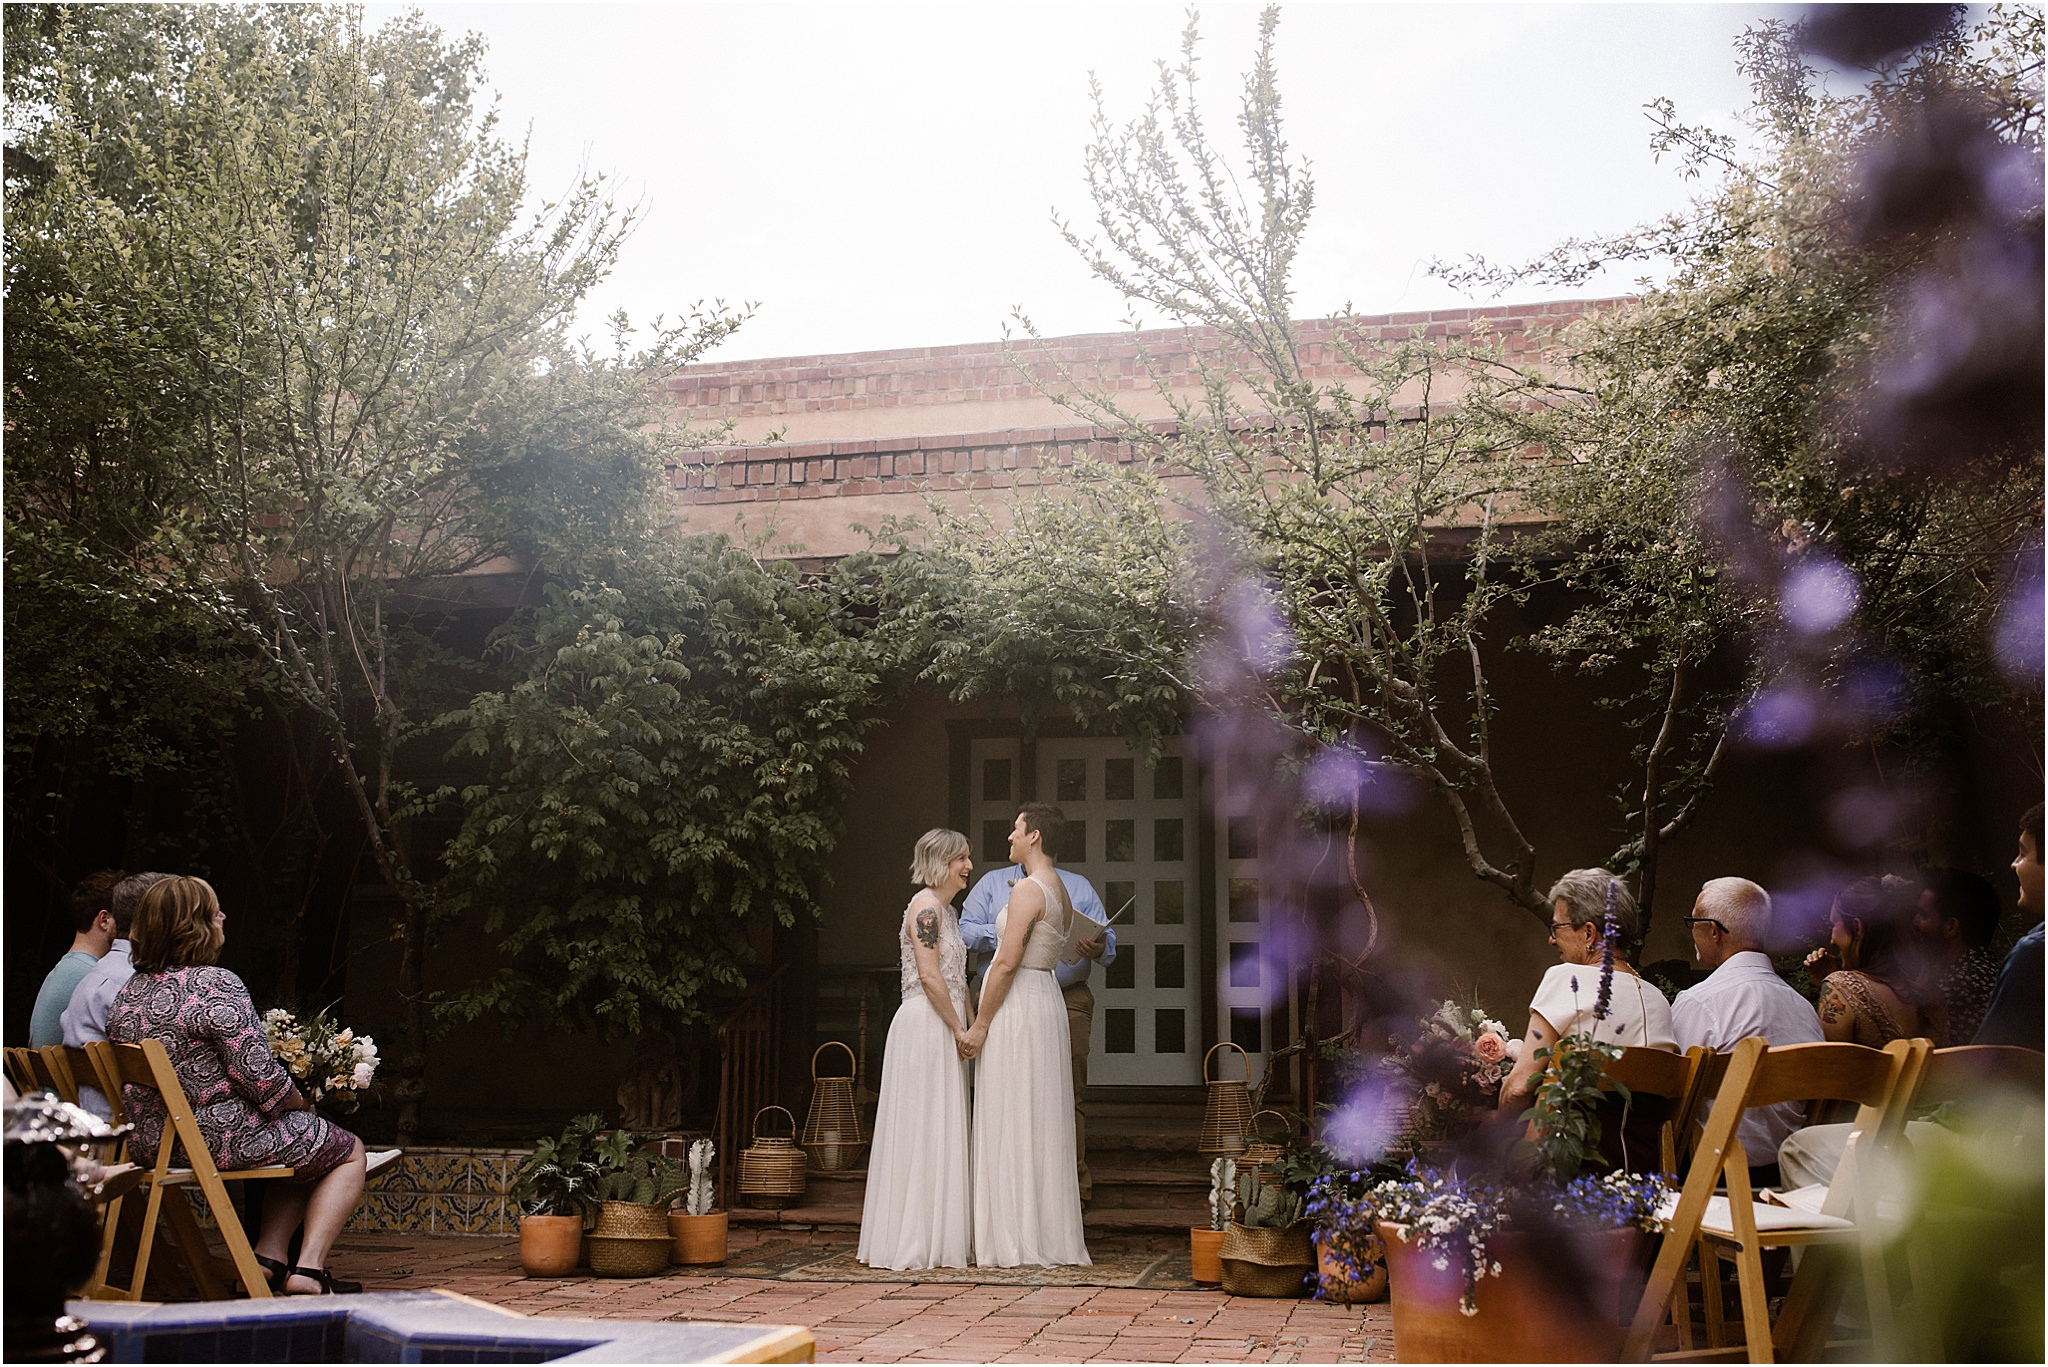 Kelly_Lisa_Los Poblanos_Wedding_Blue Rose Photography84